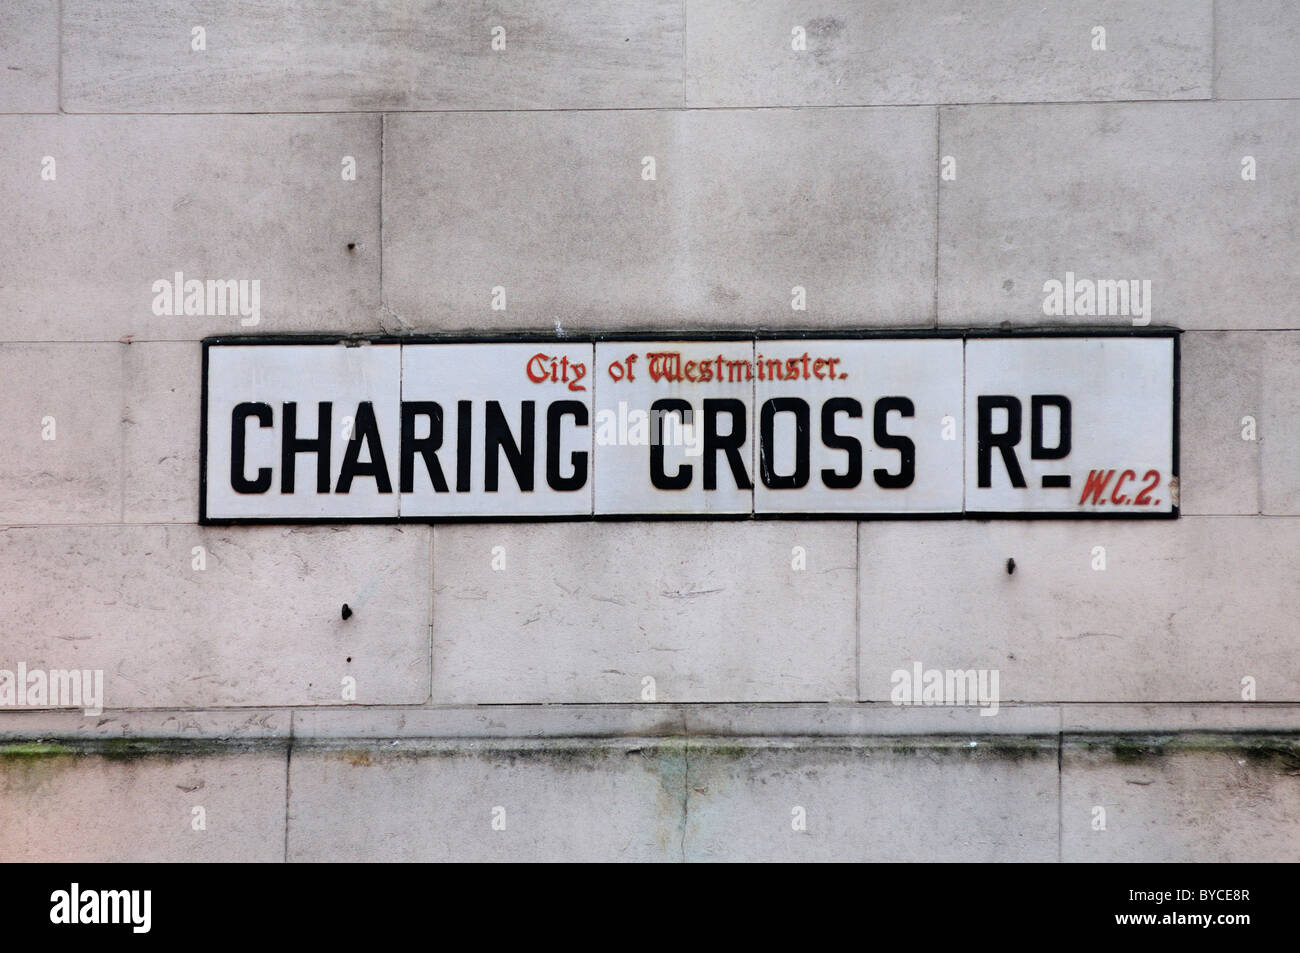 Charing Cross Rd Street Sign, London, England, UK - Stock Image